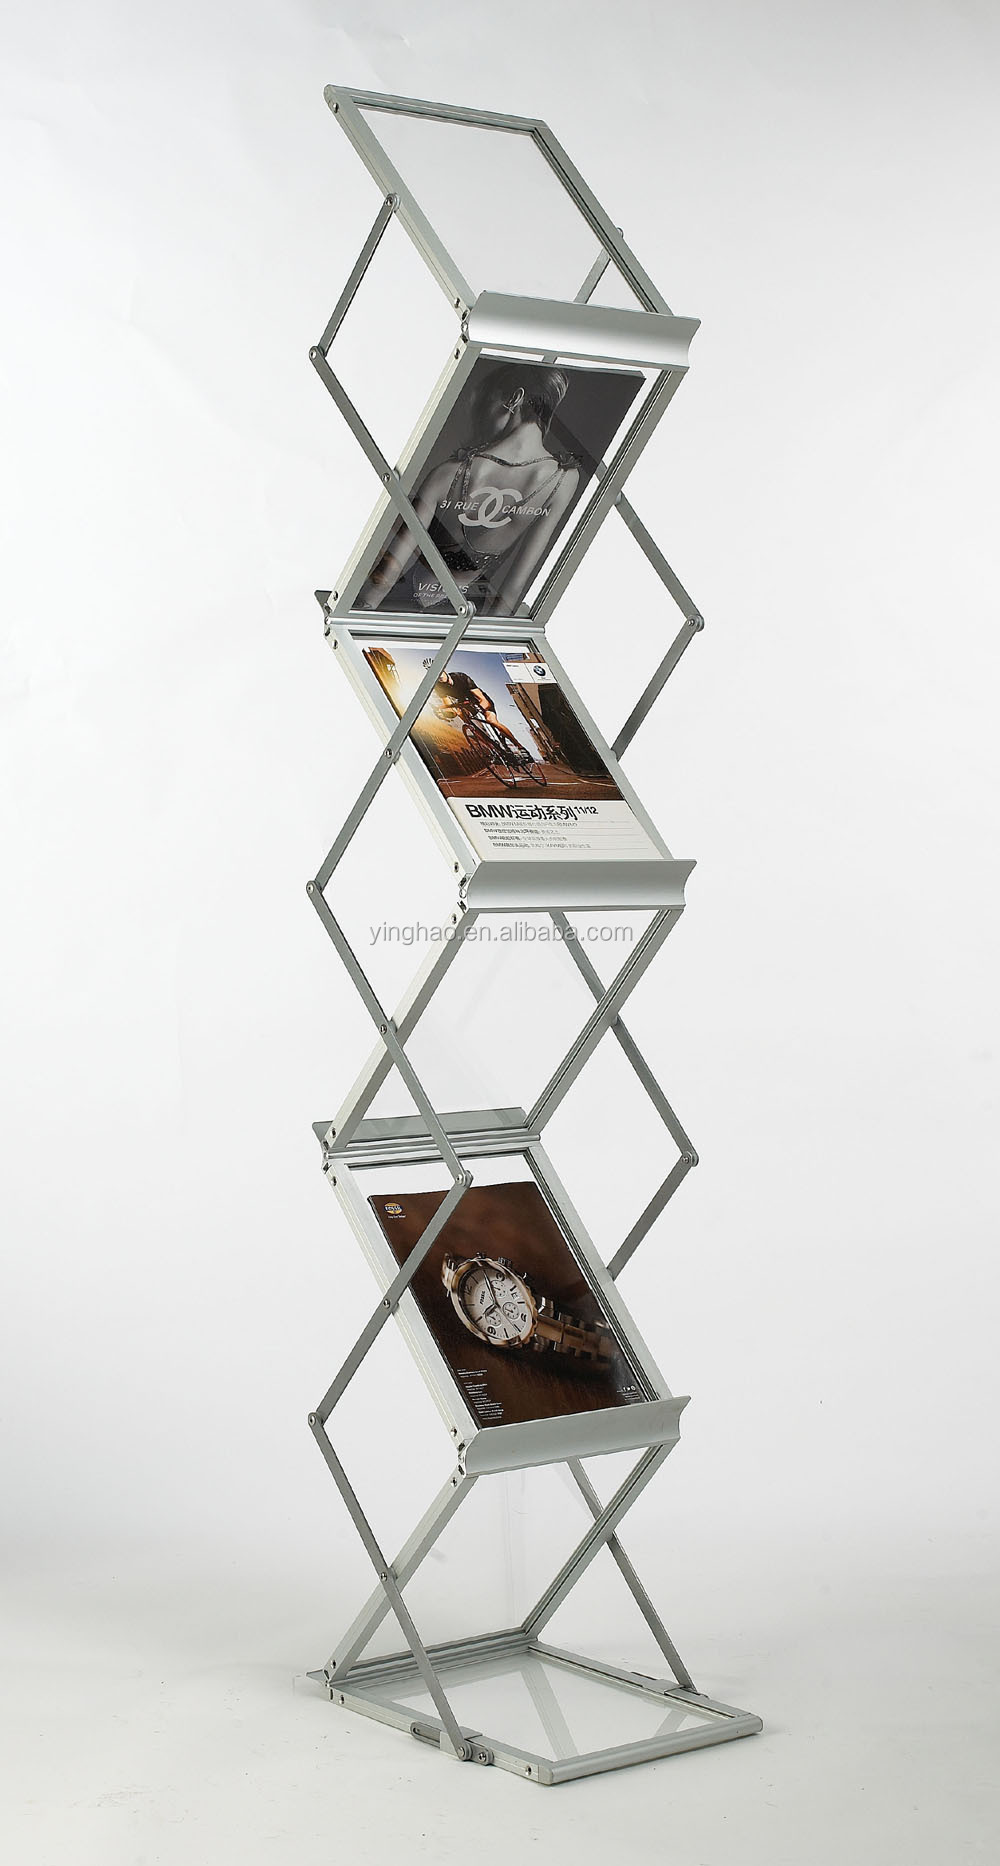 6 tier aluminum glass display stand